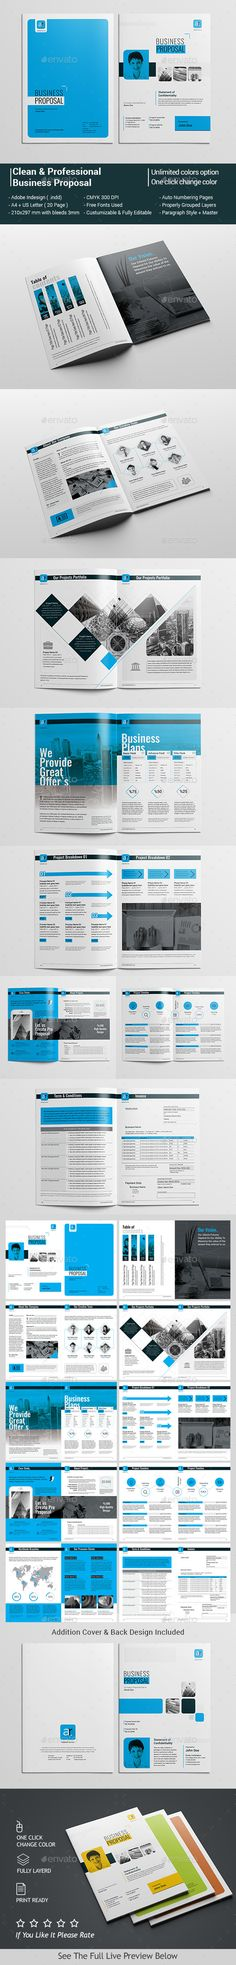 Clean & Professional  Business Proposal Template InDesign INDD #design Download: http://graphicriver.net/item/clean-professional-business-proposal/13391843?ref=ksioks